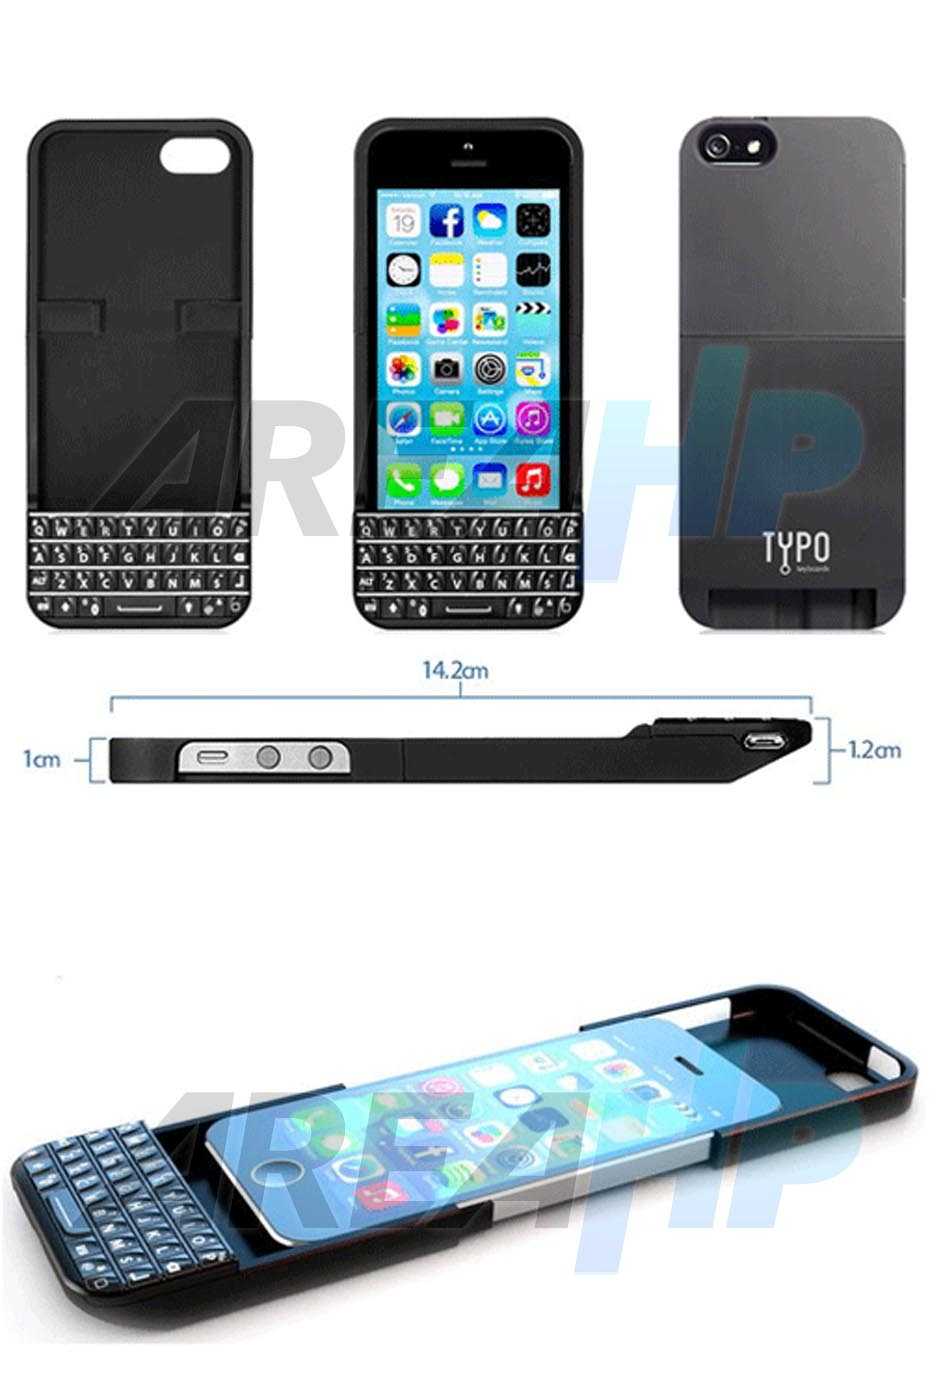 Keyboard Case Typo for iPhone 5, 5S Overview